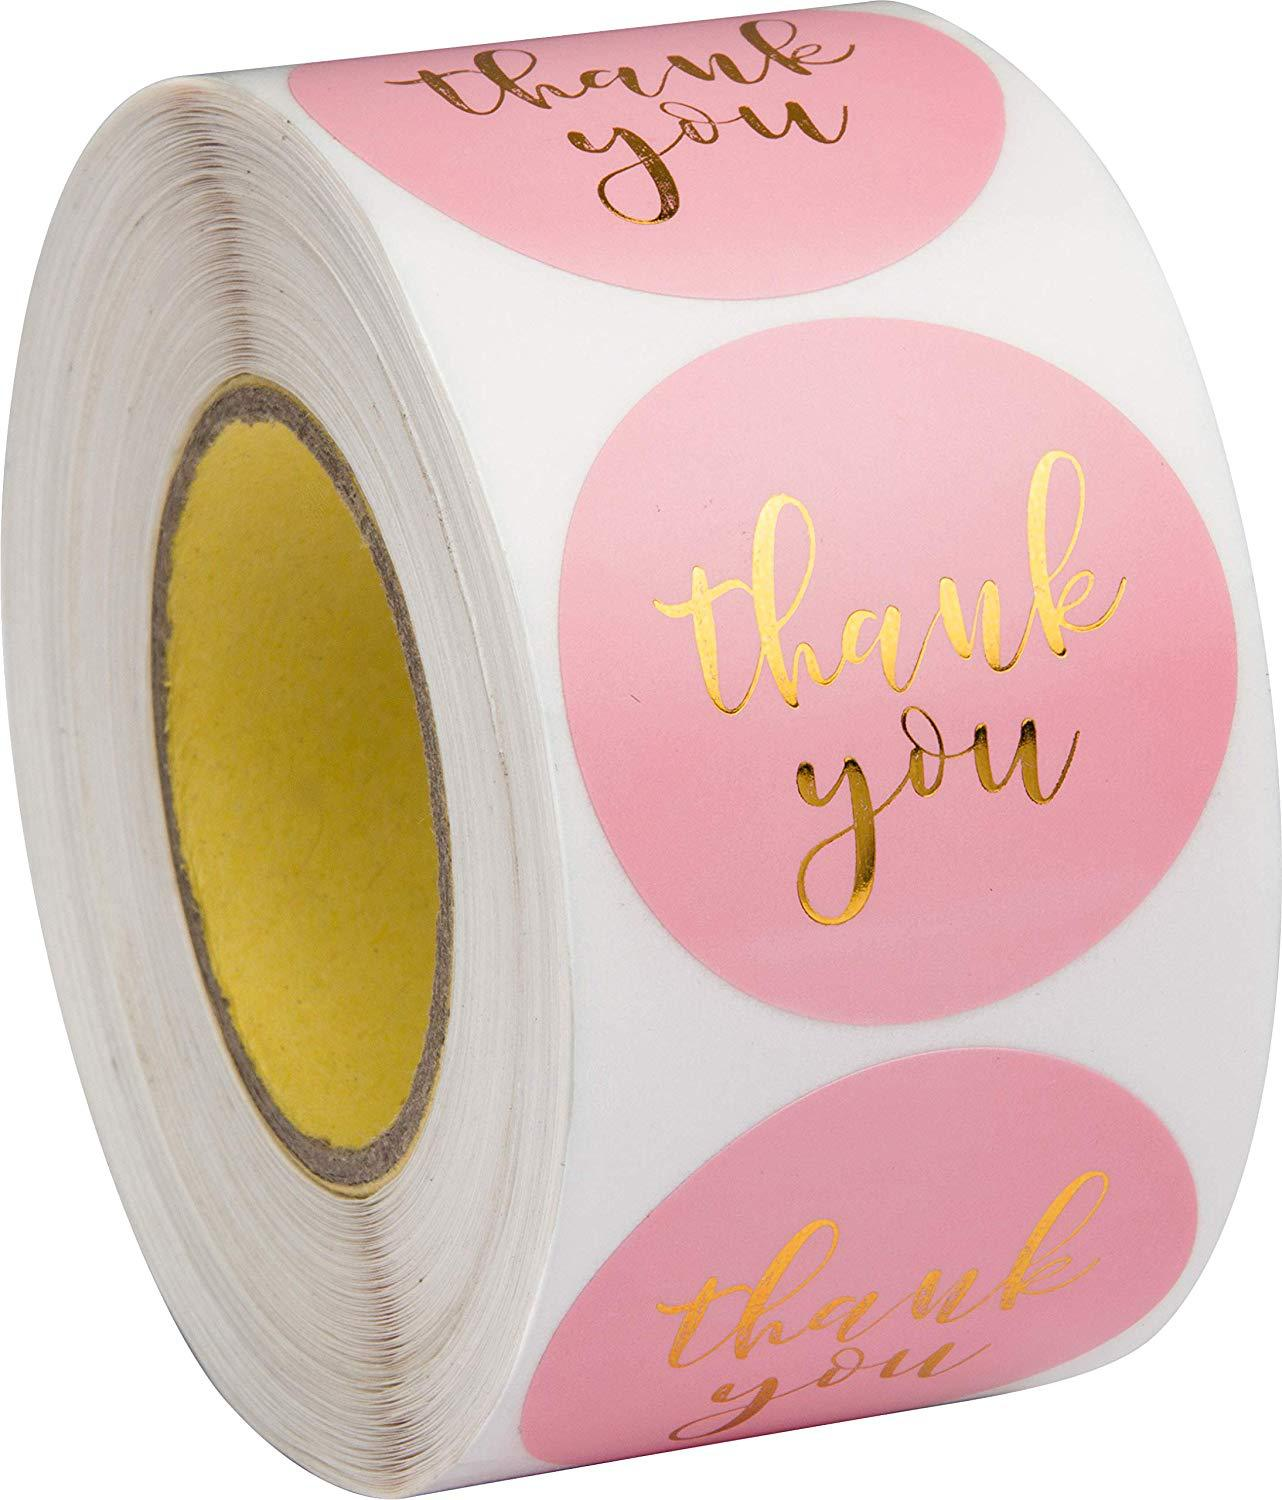 Foil Pink Thank You Stickers Scrapbooking Paper Love Heart Stickers 1'' 500pcs Envelope Wedding Seal Labels Stationery Stickers